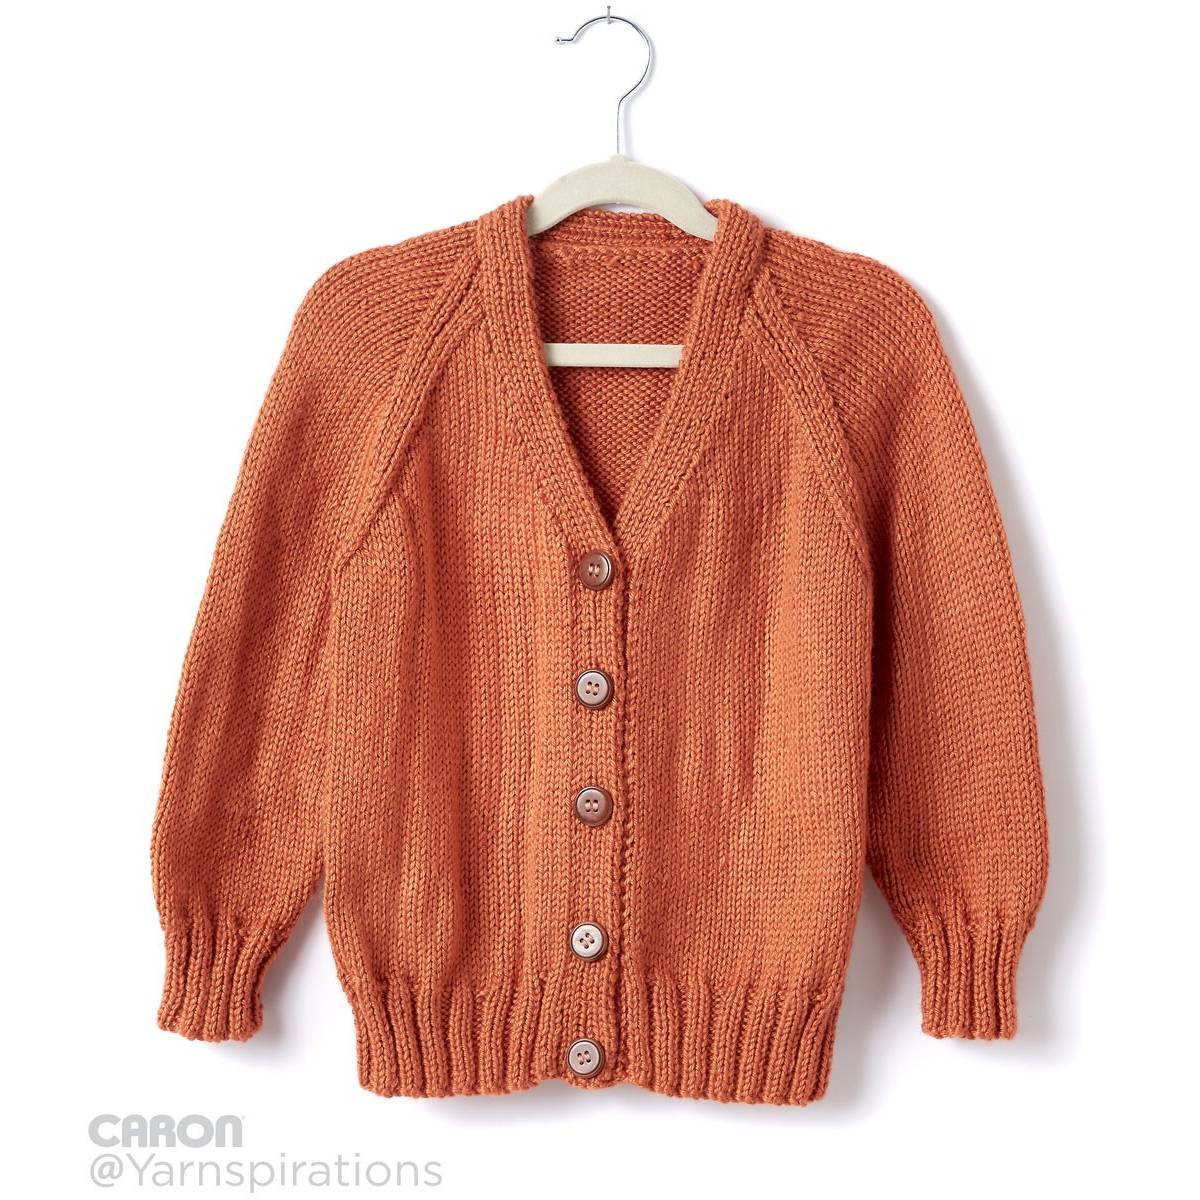 Knitting Patterns For Childrens Sweaters Free Free Pattern Caron Childs Knit V Neck Cardigan Hobcraft